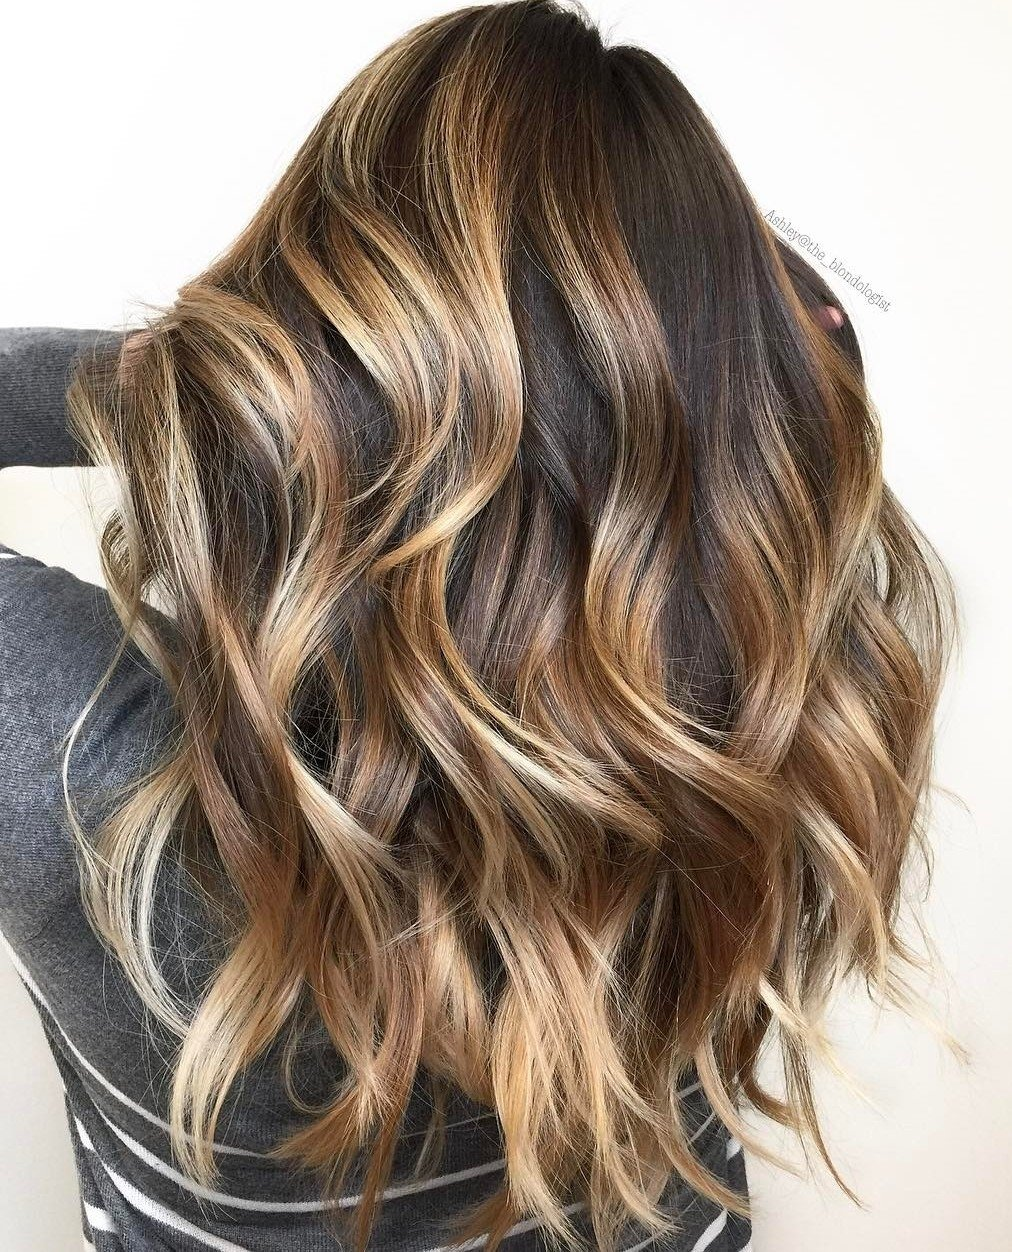 10 Great Haircut Ideas For Long Thick Hair hairstyles and haircuts for thick hair in 2018 therighthairstyles